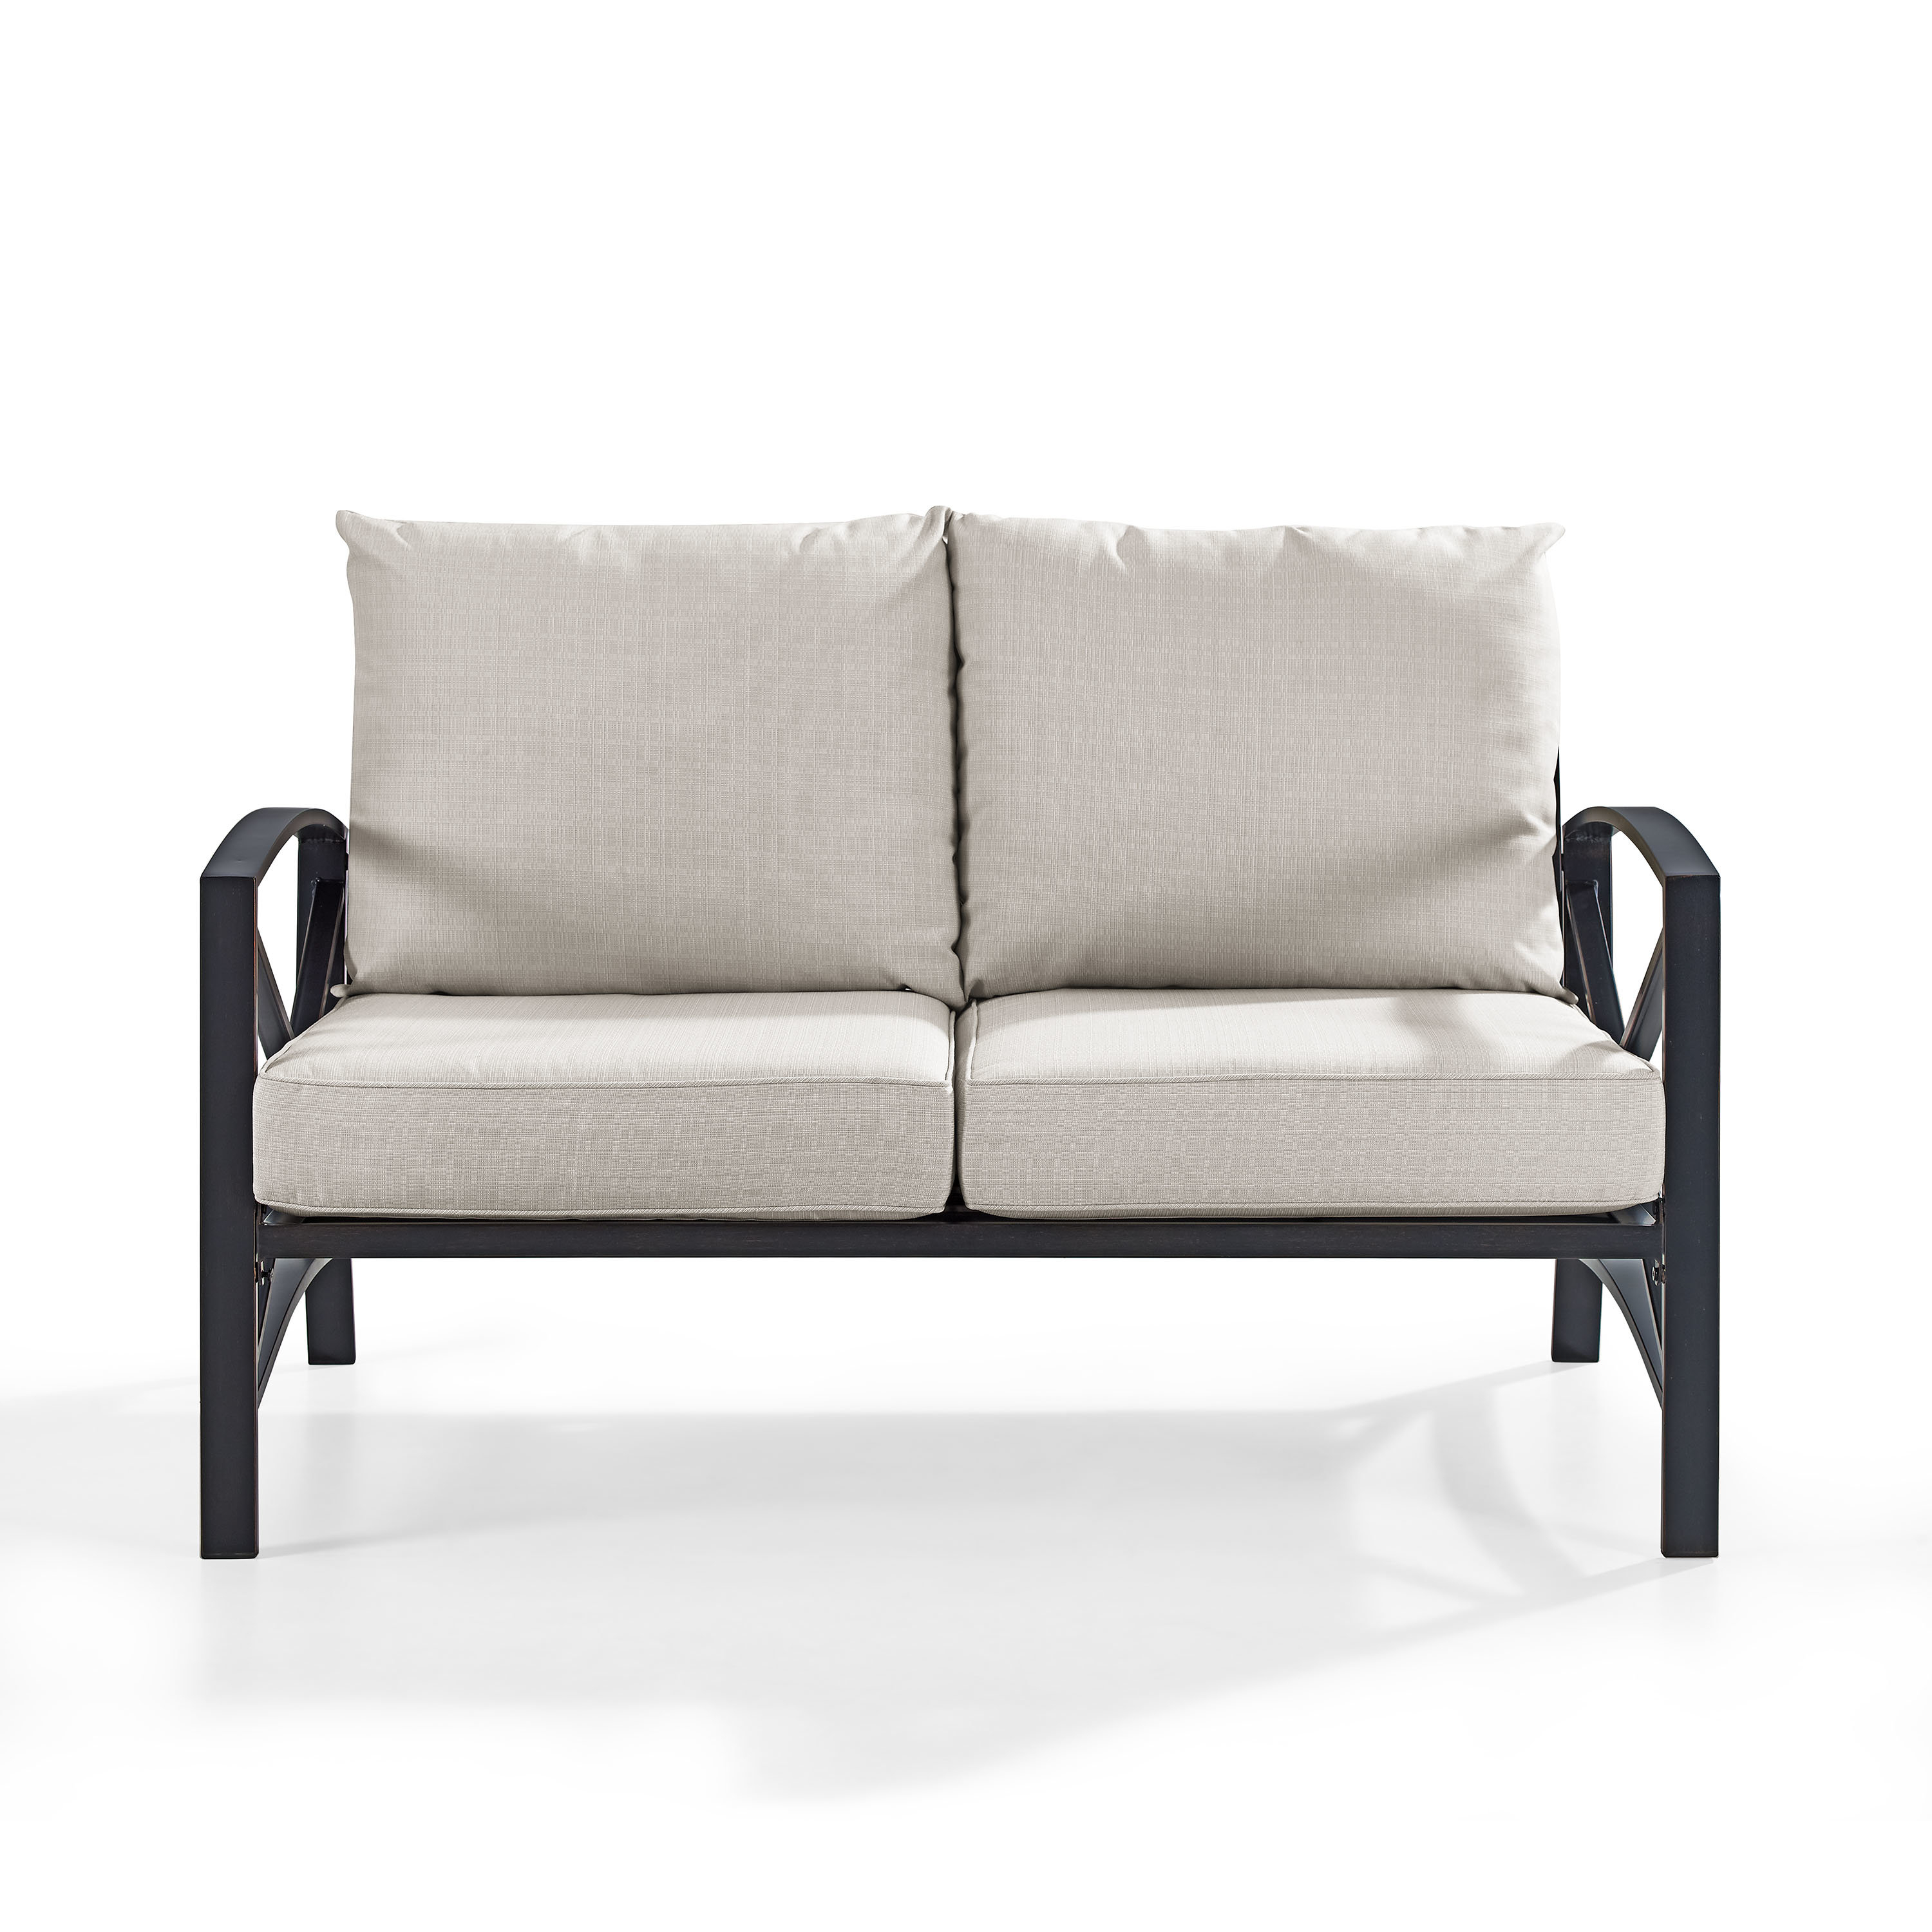 Popular Bristol Loveseats With Cushions Pertaining To Freitag Loveseat With Cushions (View 11 of 20)